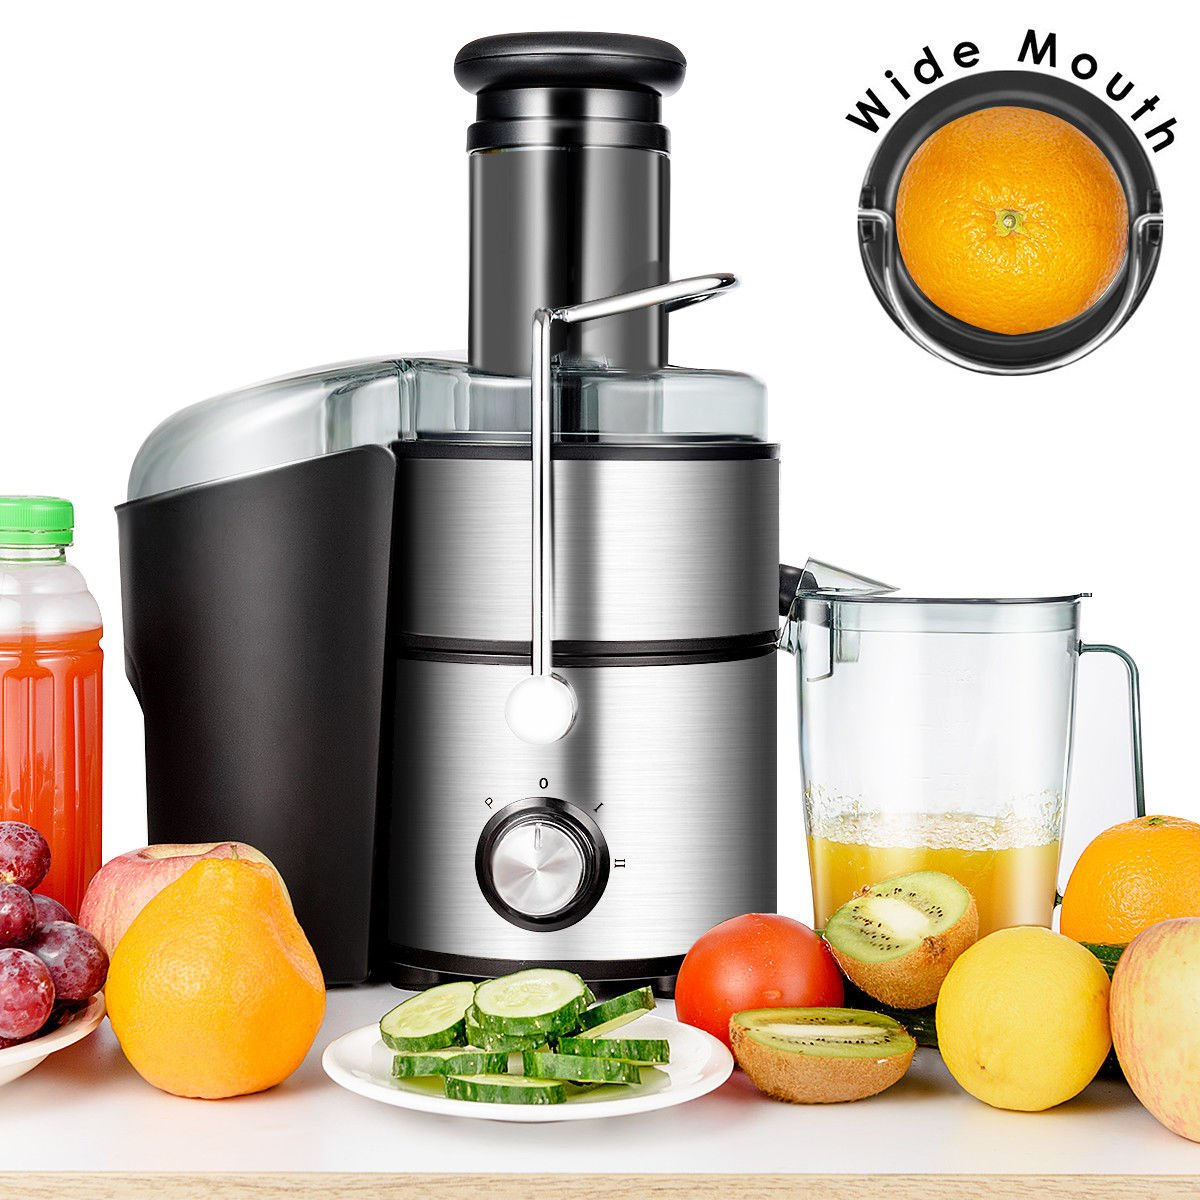 Costway 5-in-1 Juice Extractor Wide Mouth Stainless Steel Centrifugal Juicer Machines 2-Speed Masticating Juicer Machine for Fruits and Vegetable with Blender, Chopper, Grinder and Food Processor